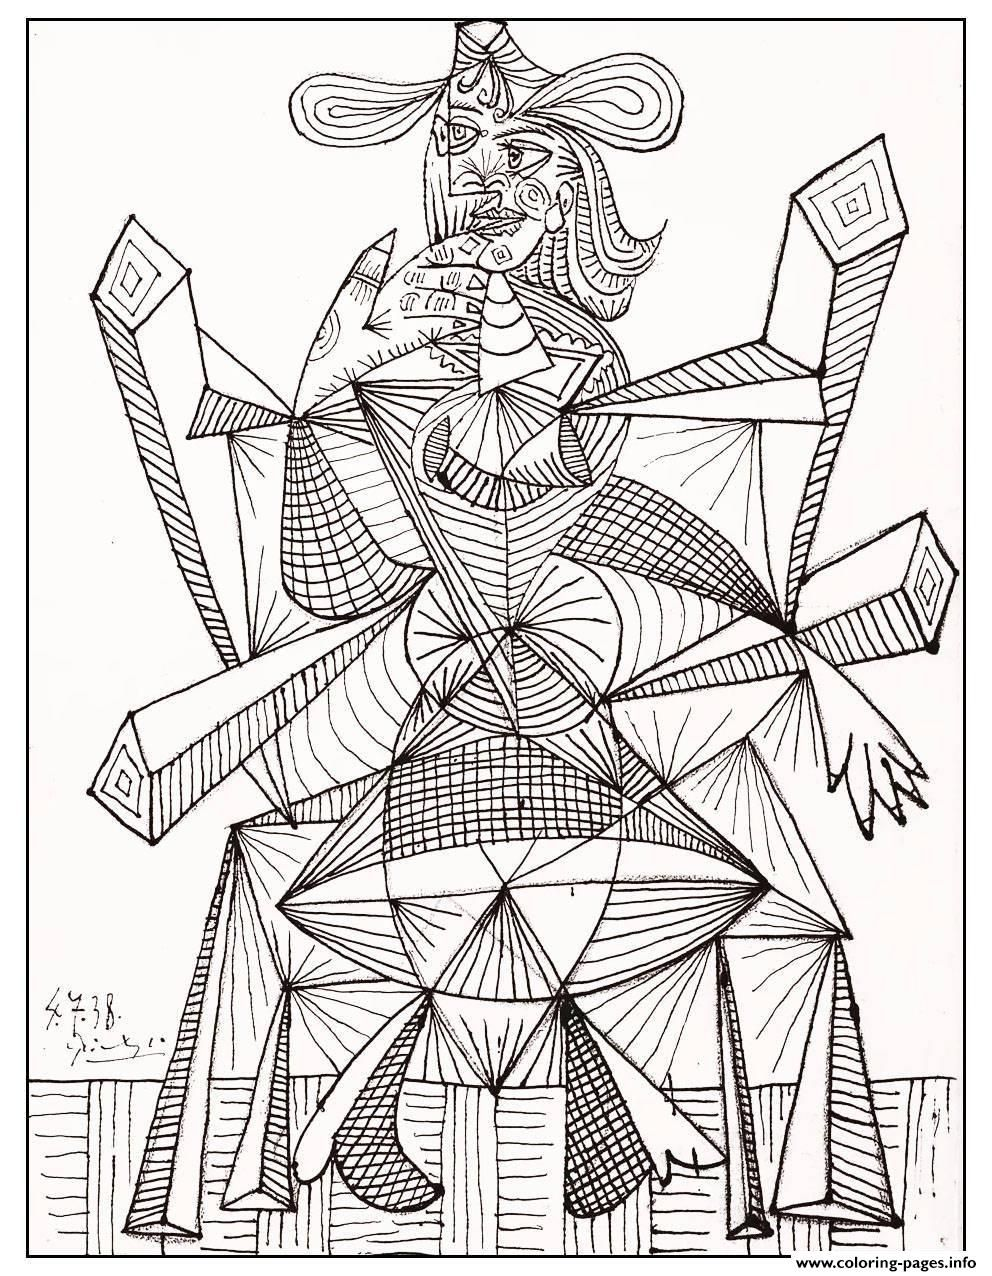 Print adult drawing by picasso 1938 coloring pages | Pablo Picasso ...